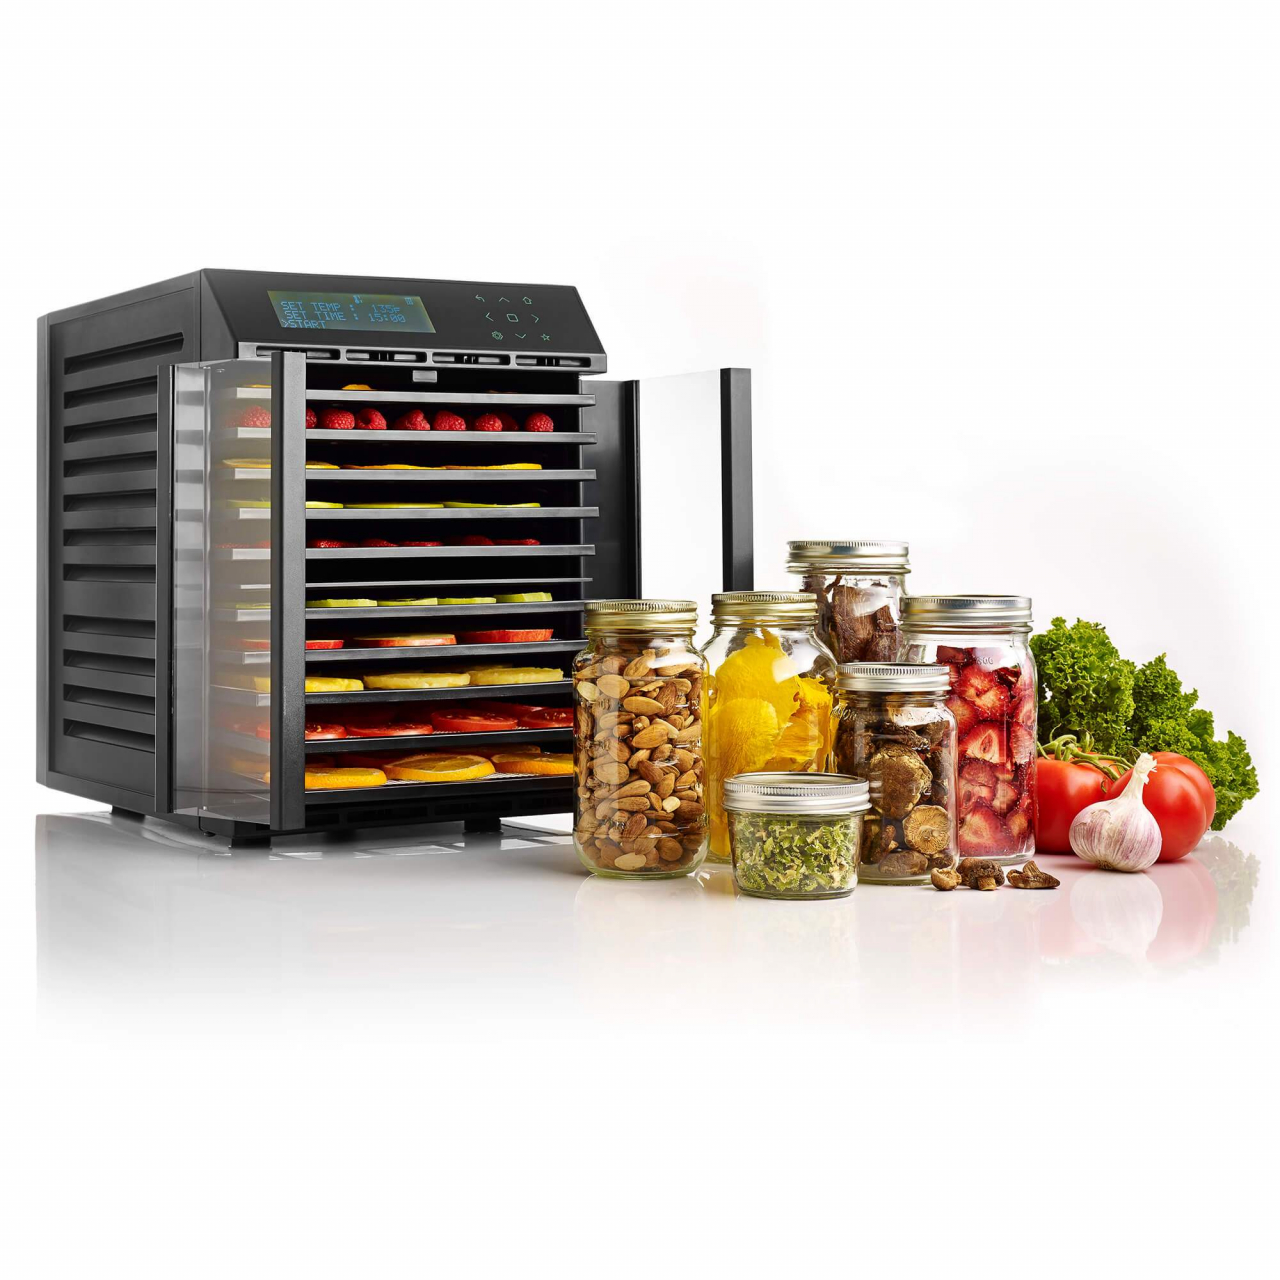 RES10 Smart Digital 10 Tray Compact Excalibur Dehydrator